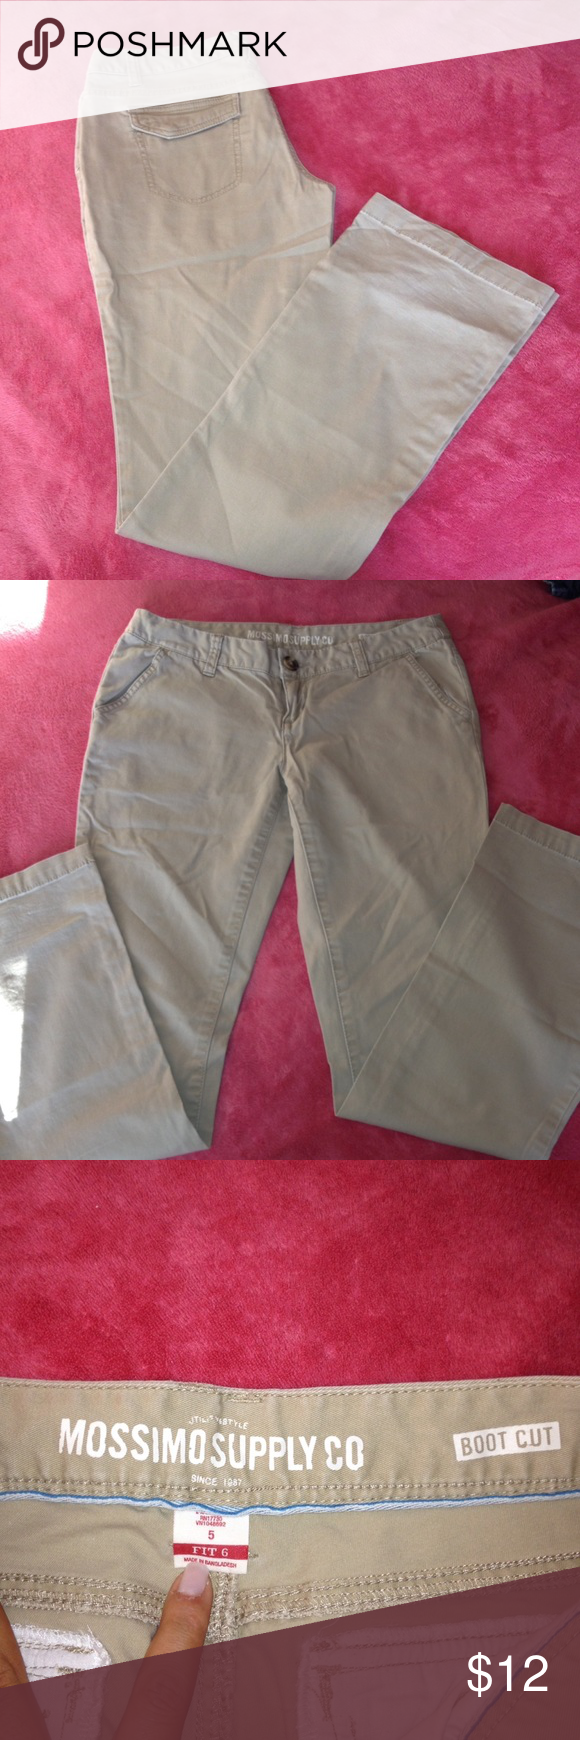 Missimo supply beige pants Boot cut size 6. Condition used but good Mossimo Supply Co. Pants Boot Cut & Flare